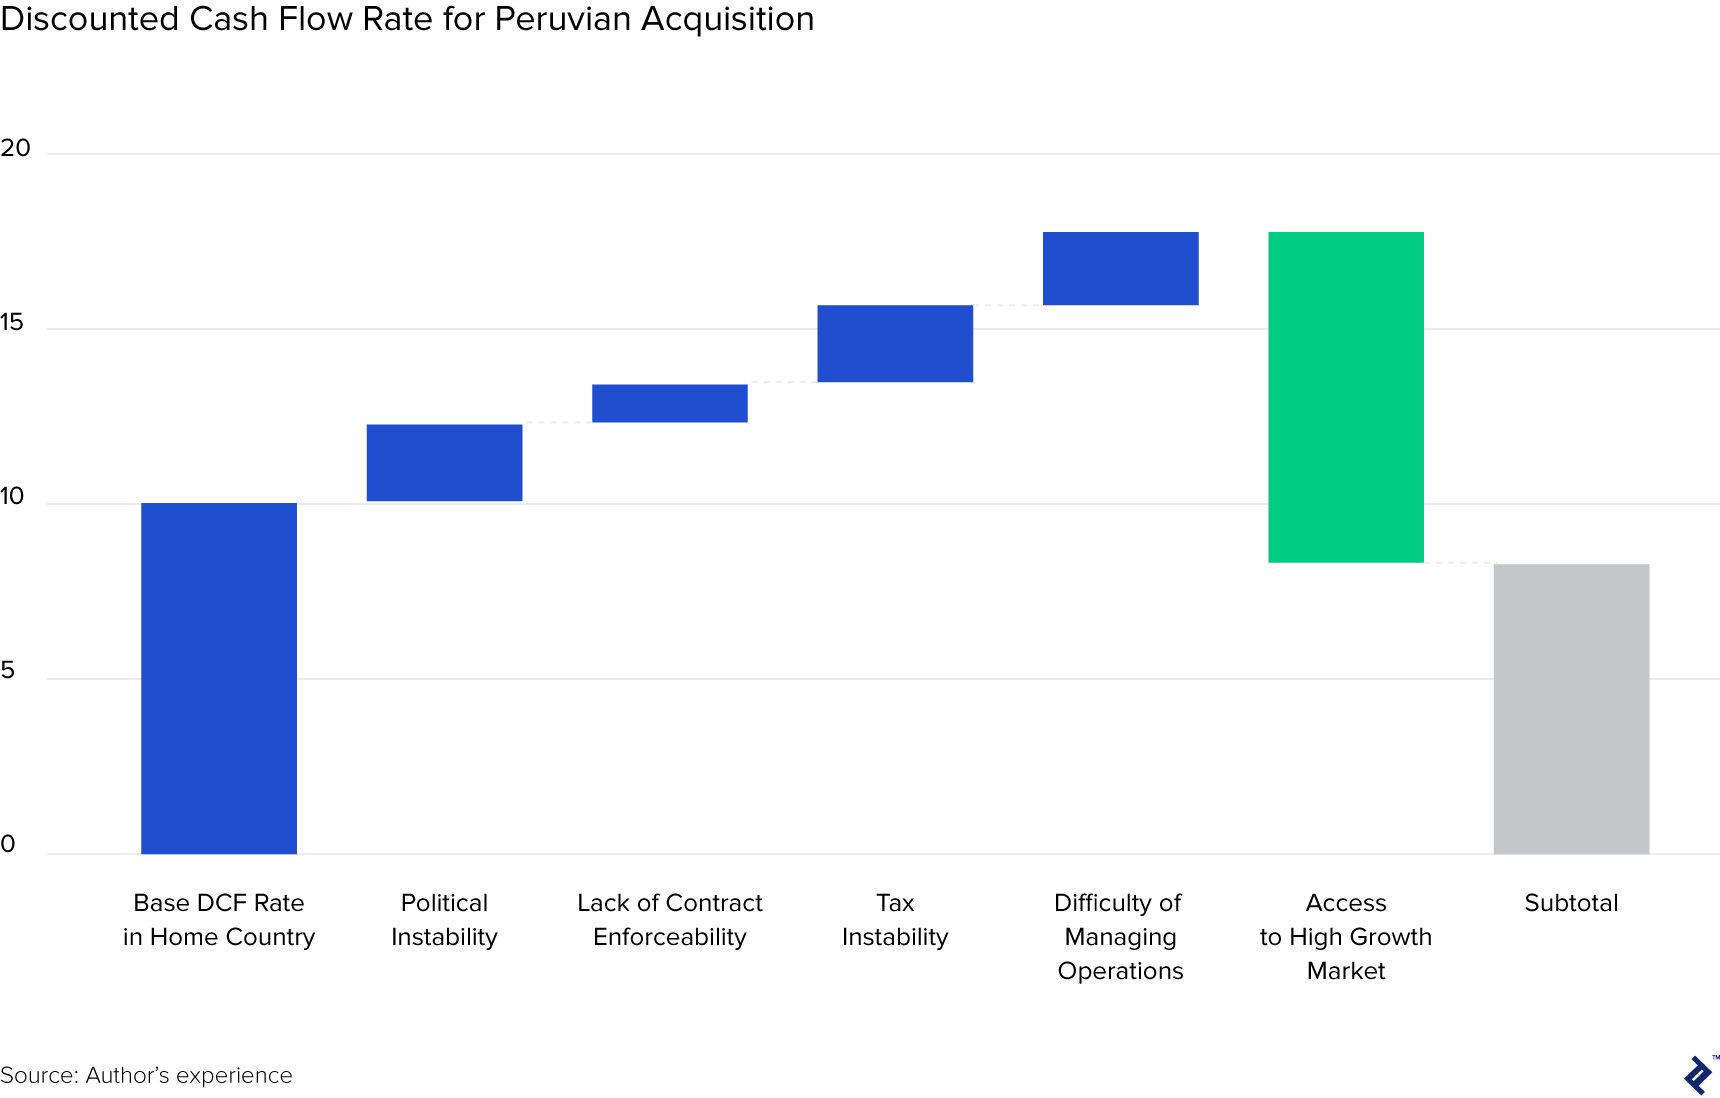 bar chart visualizing discounted cash flow rate for peruvian acquisition